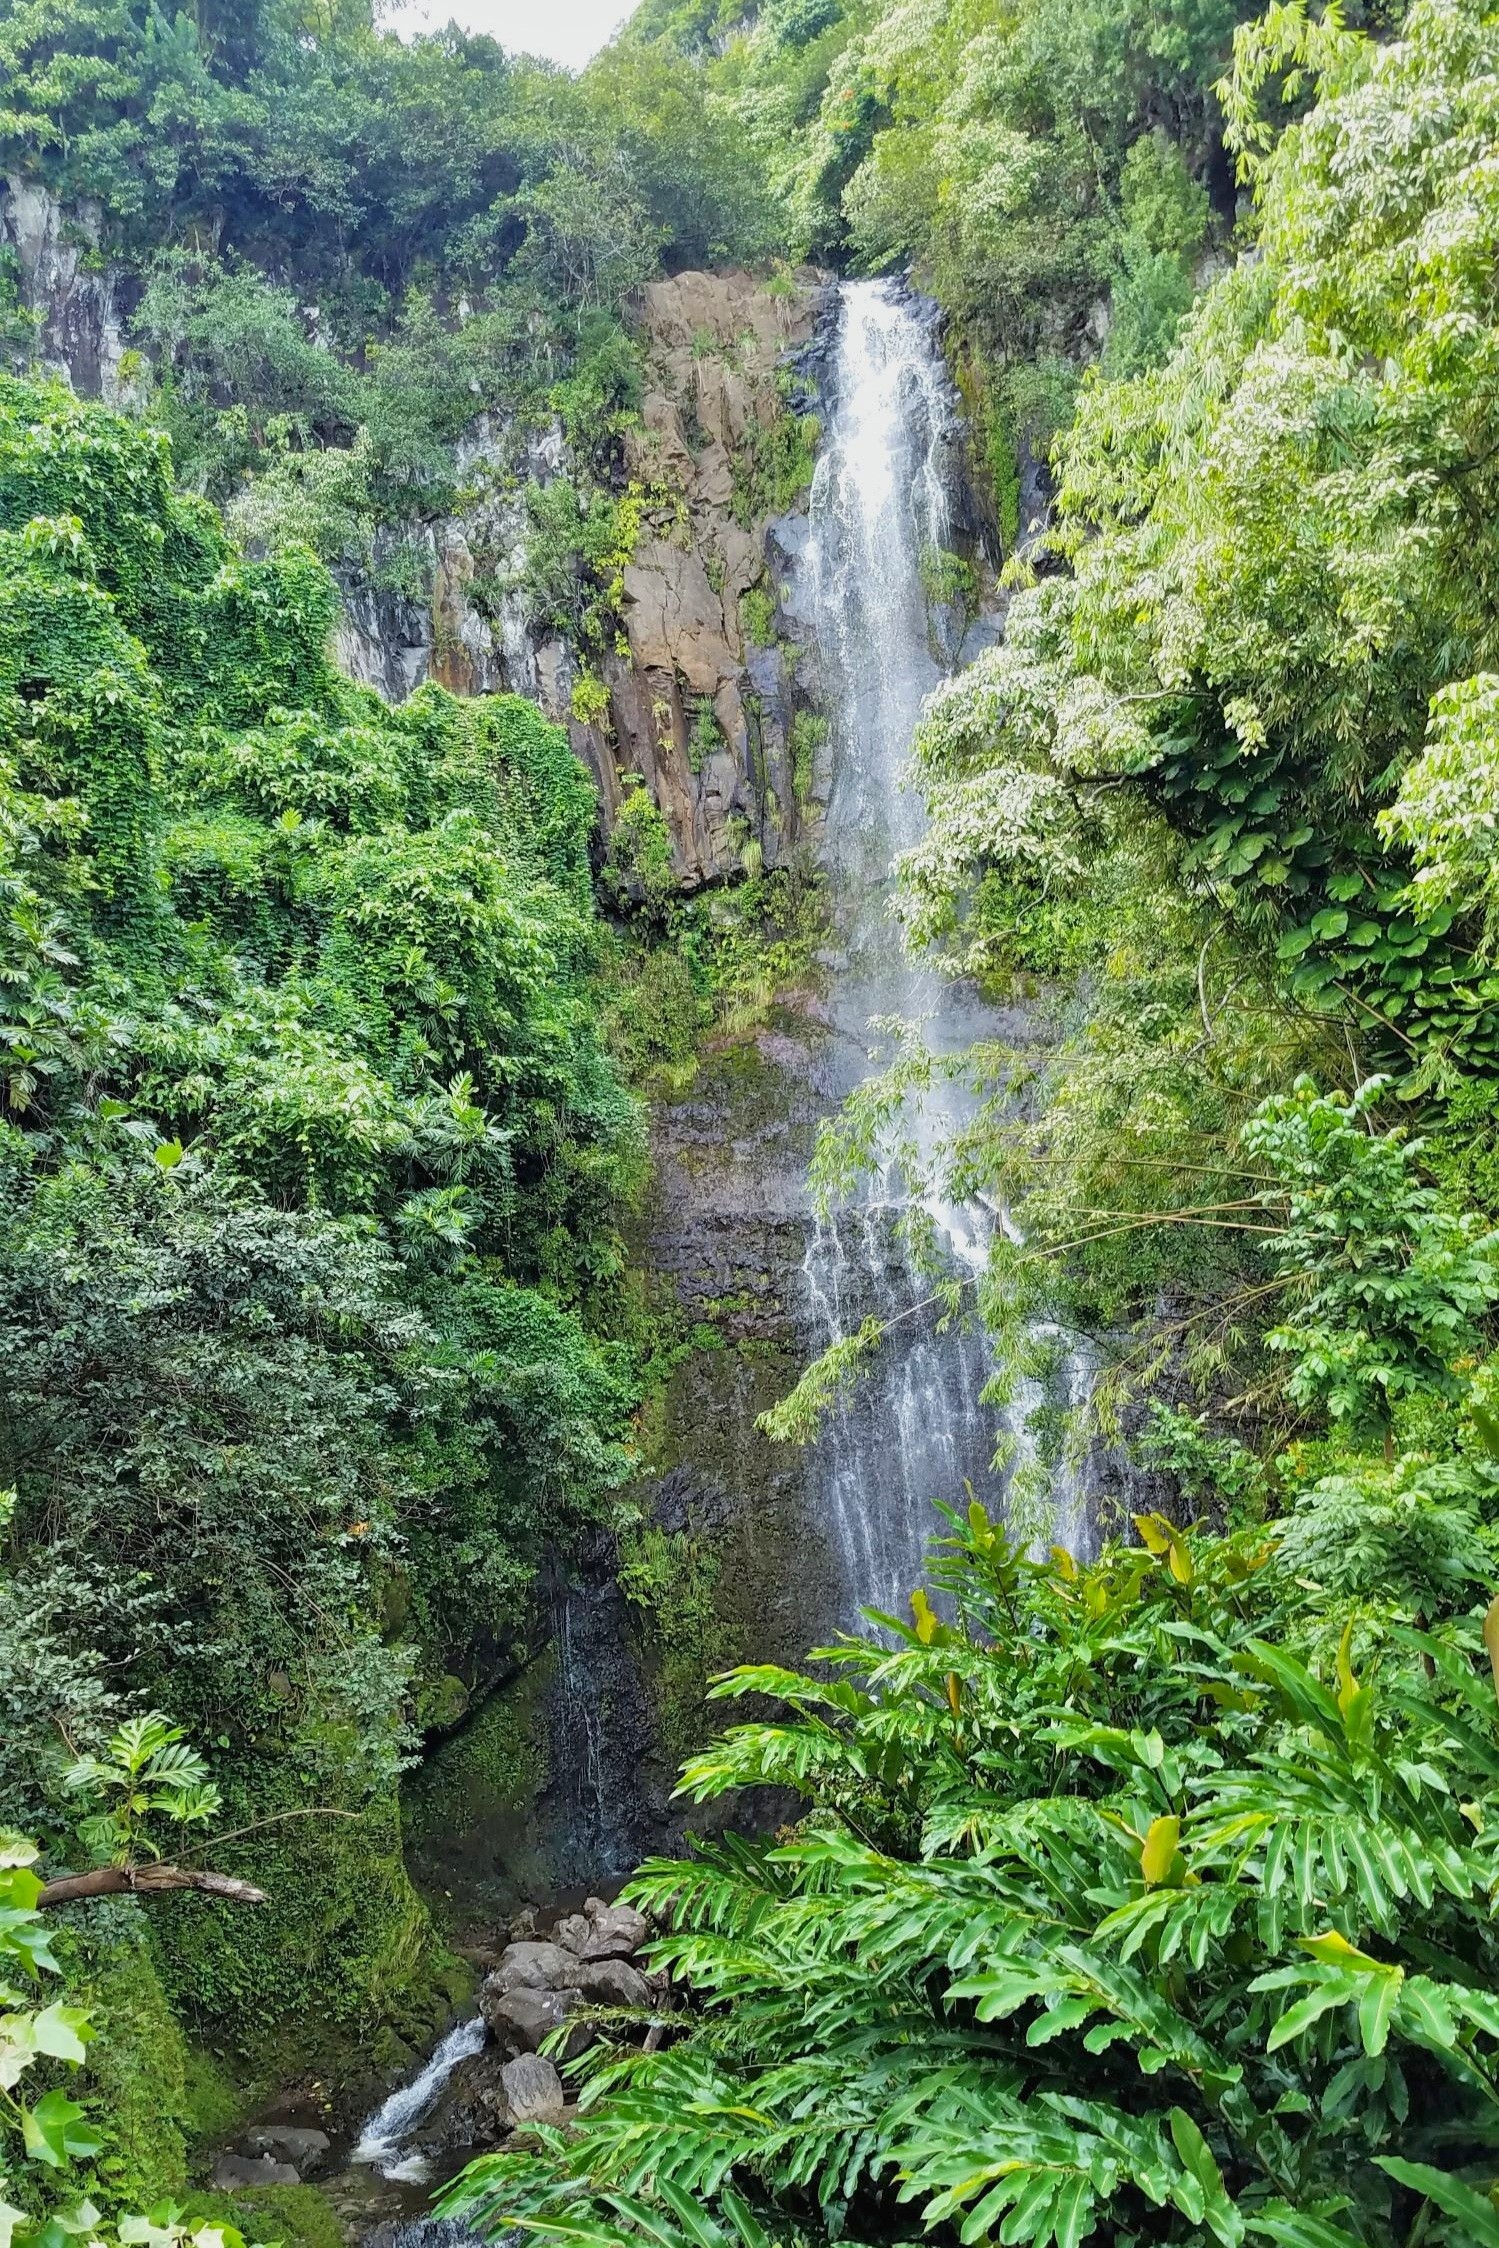 Wailua Falls running down a cliff face surrounded by greenery is one of the most popular Road to Hana waterfalls.